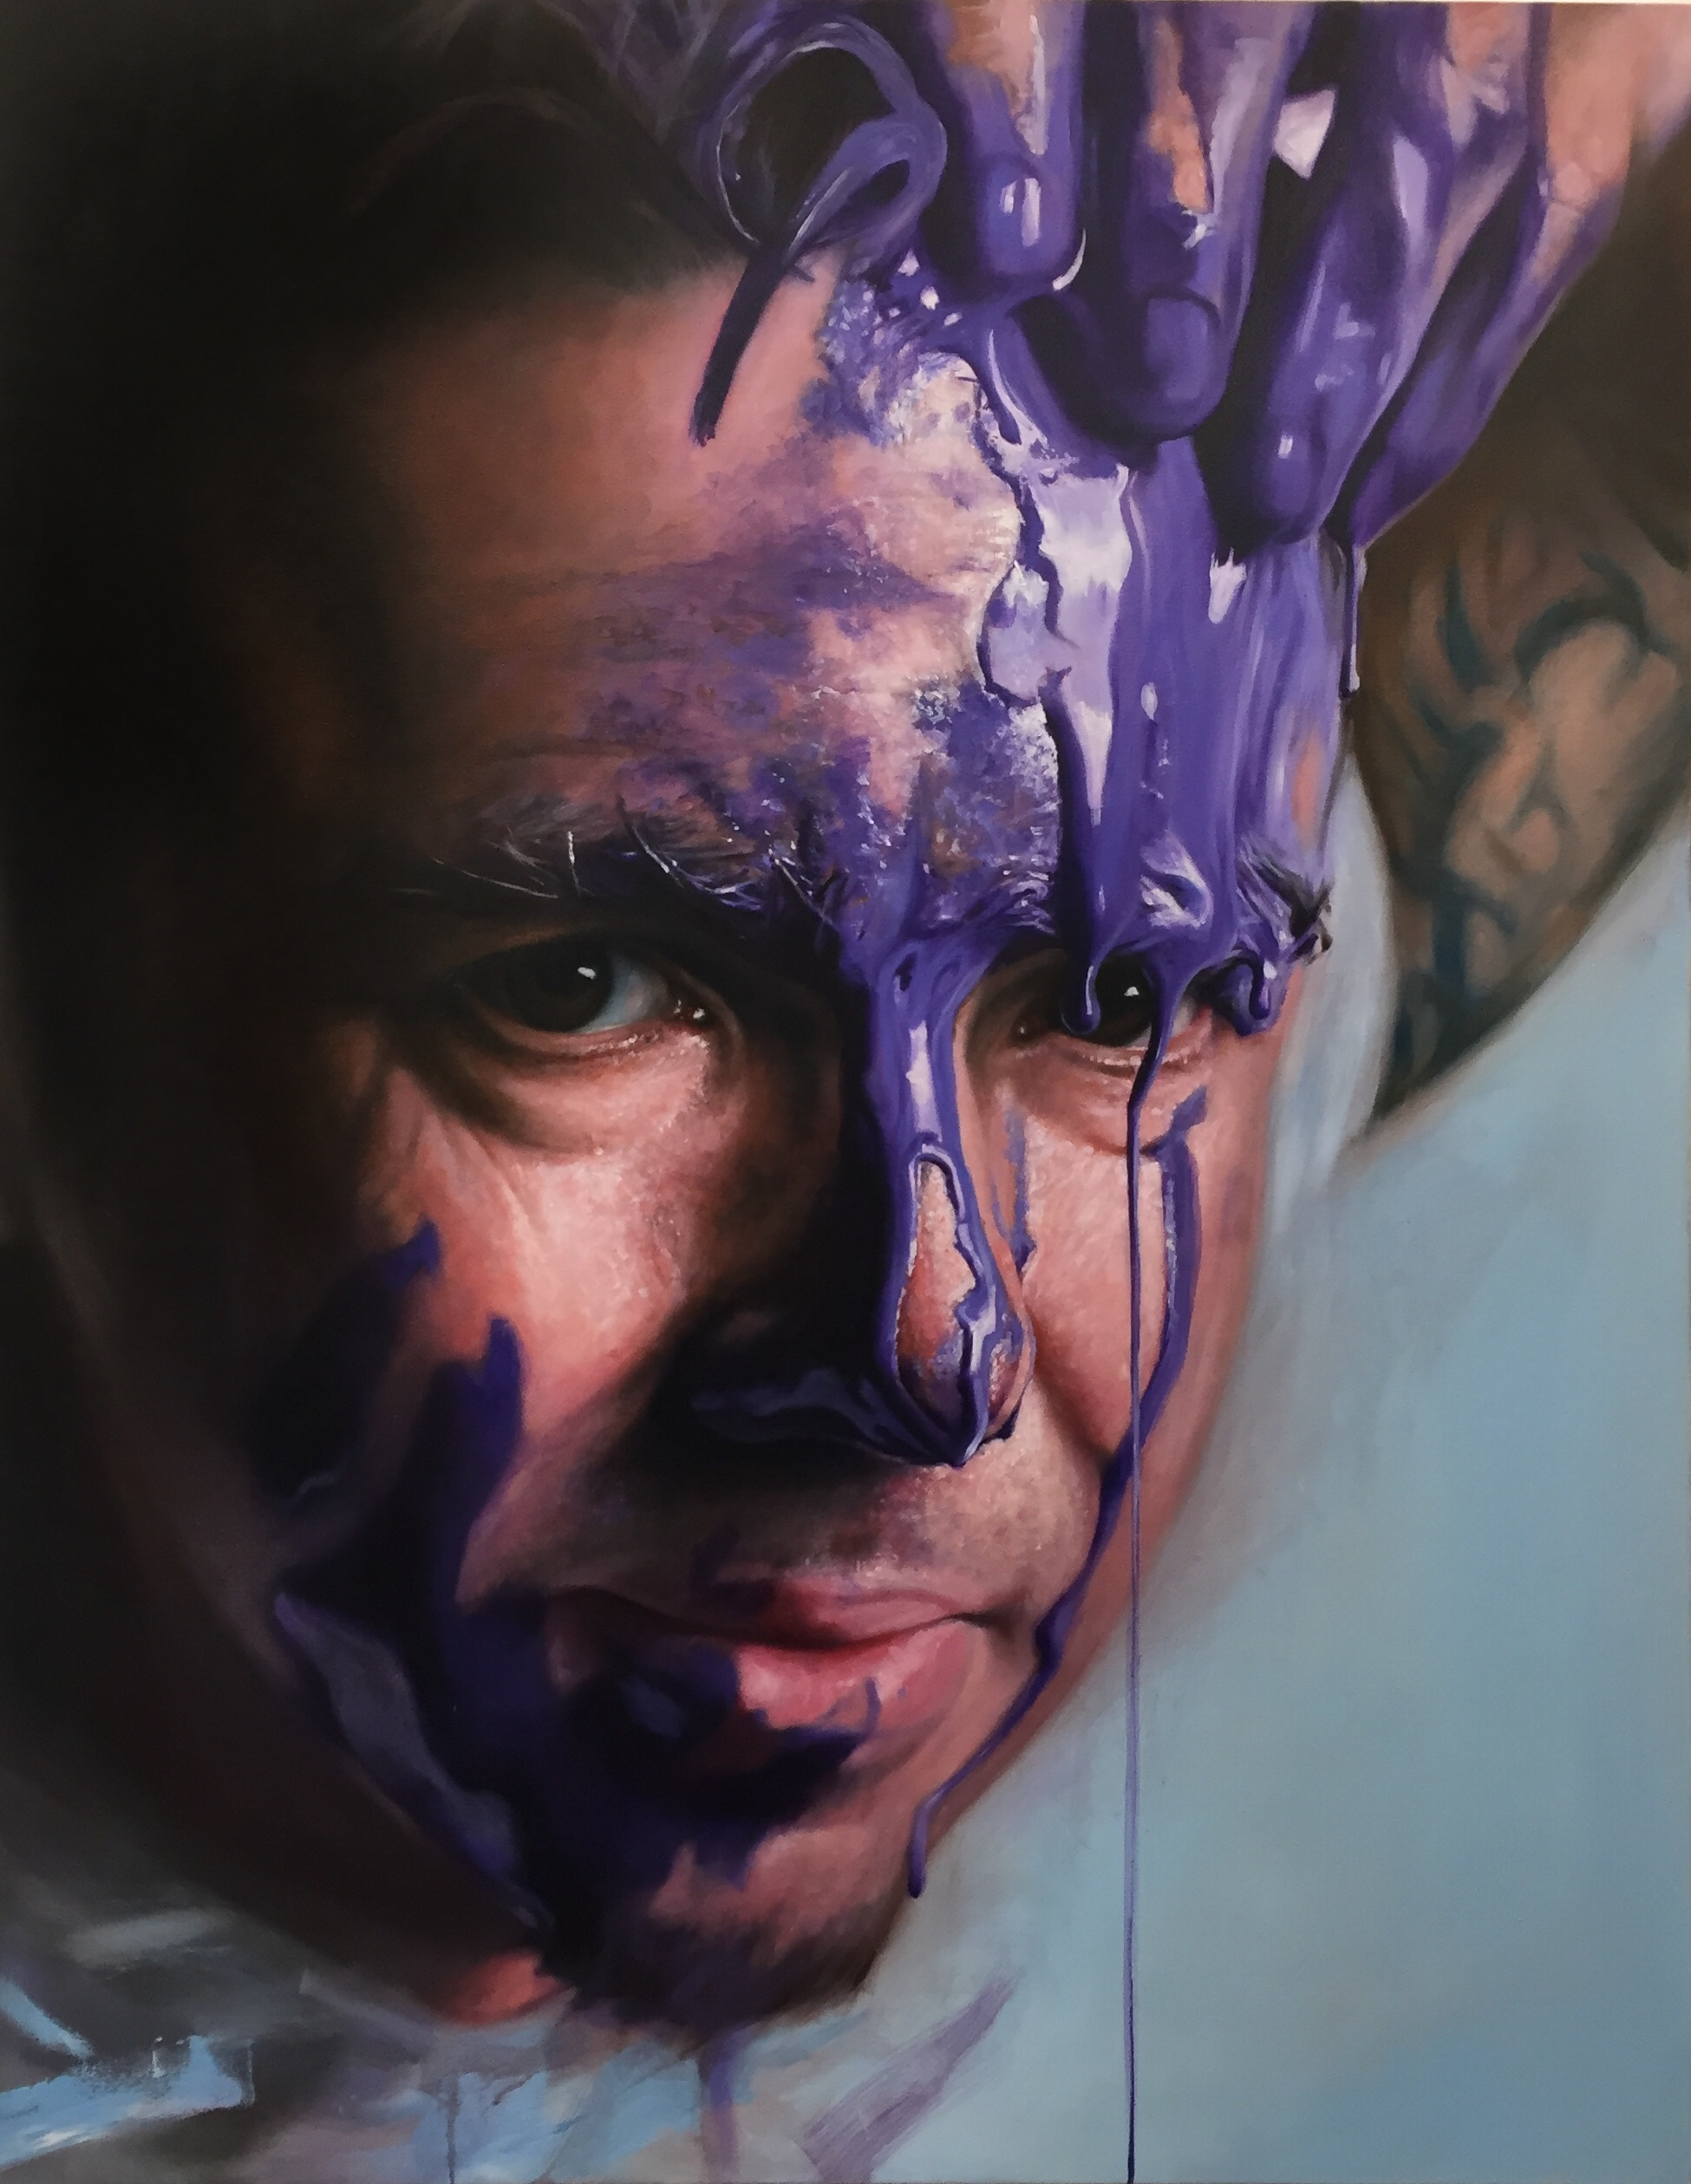 Purple Paint Play Commission, 110x140cm, Oil on Canvas (SOLD)